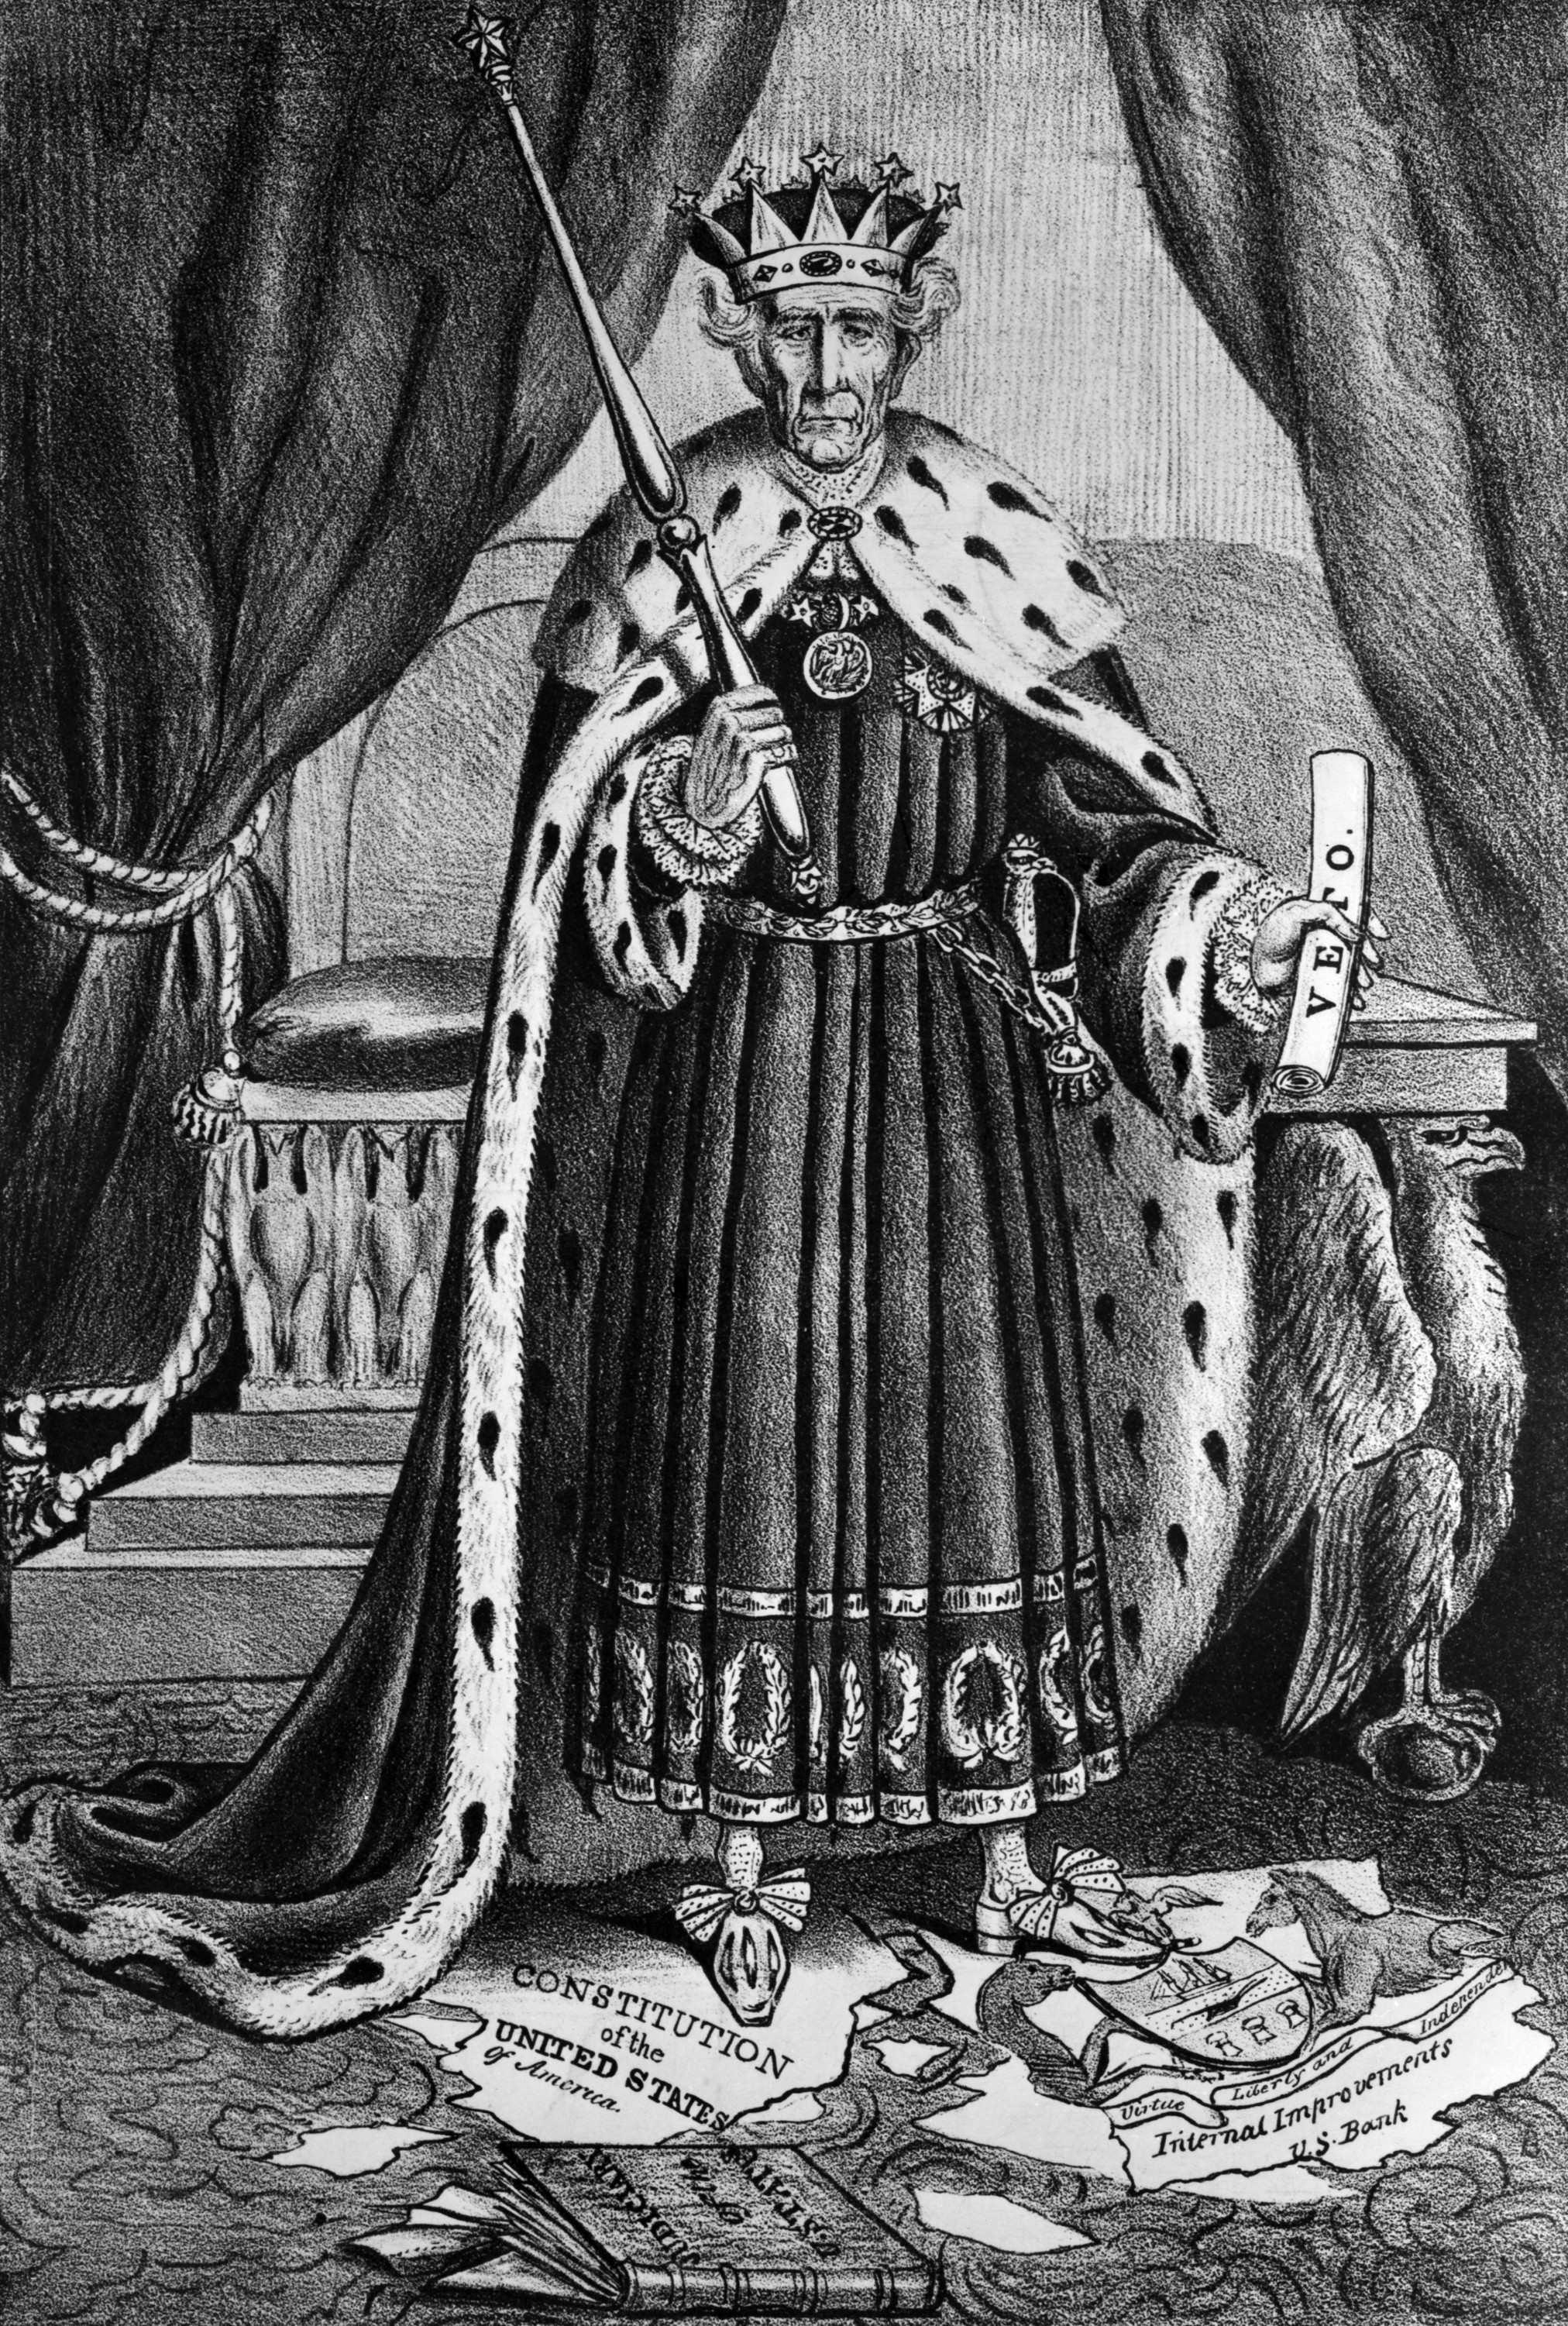 andrew jackson tyrant Jacksonian democracy is a 19th-century political philosophy in  jackson was denounced as a tyrant by opponents on both ends of the  andrew jackson: .